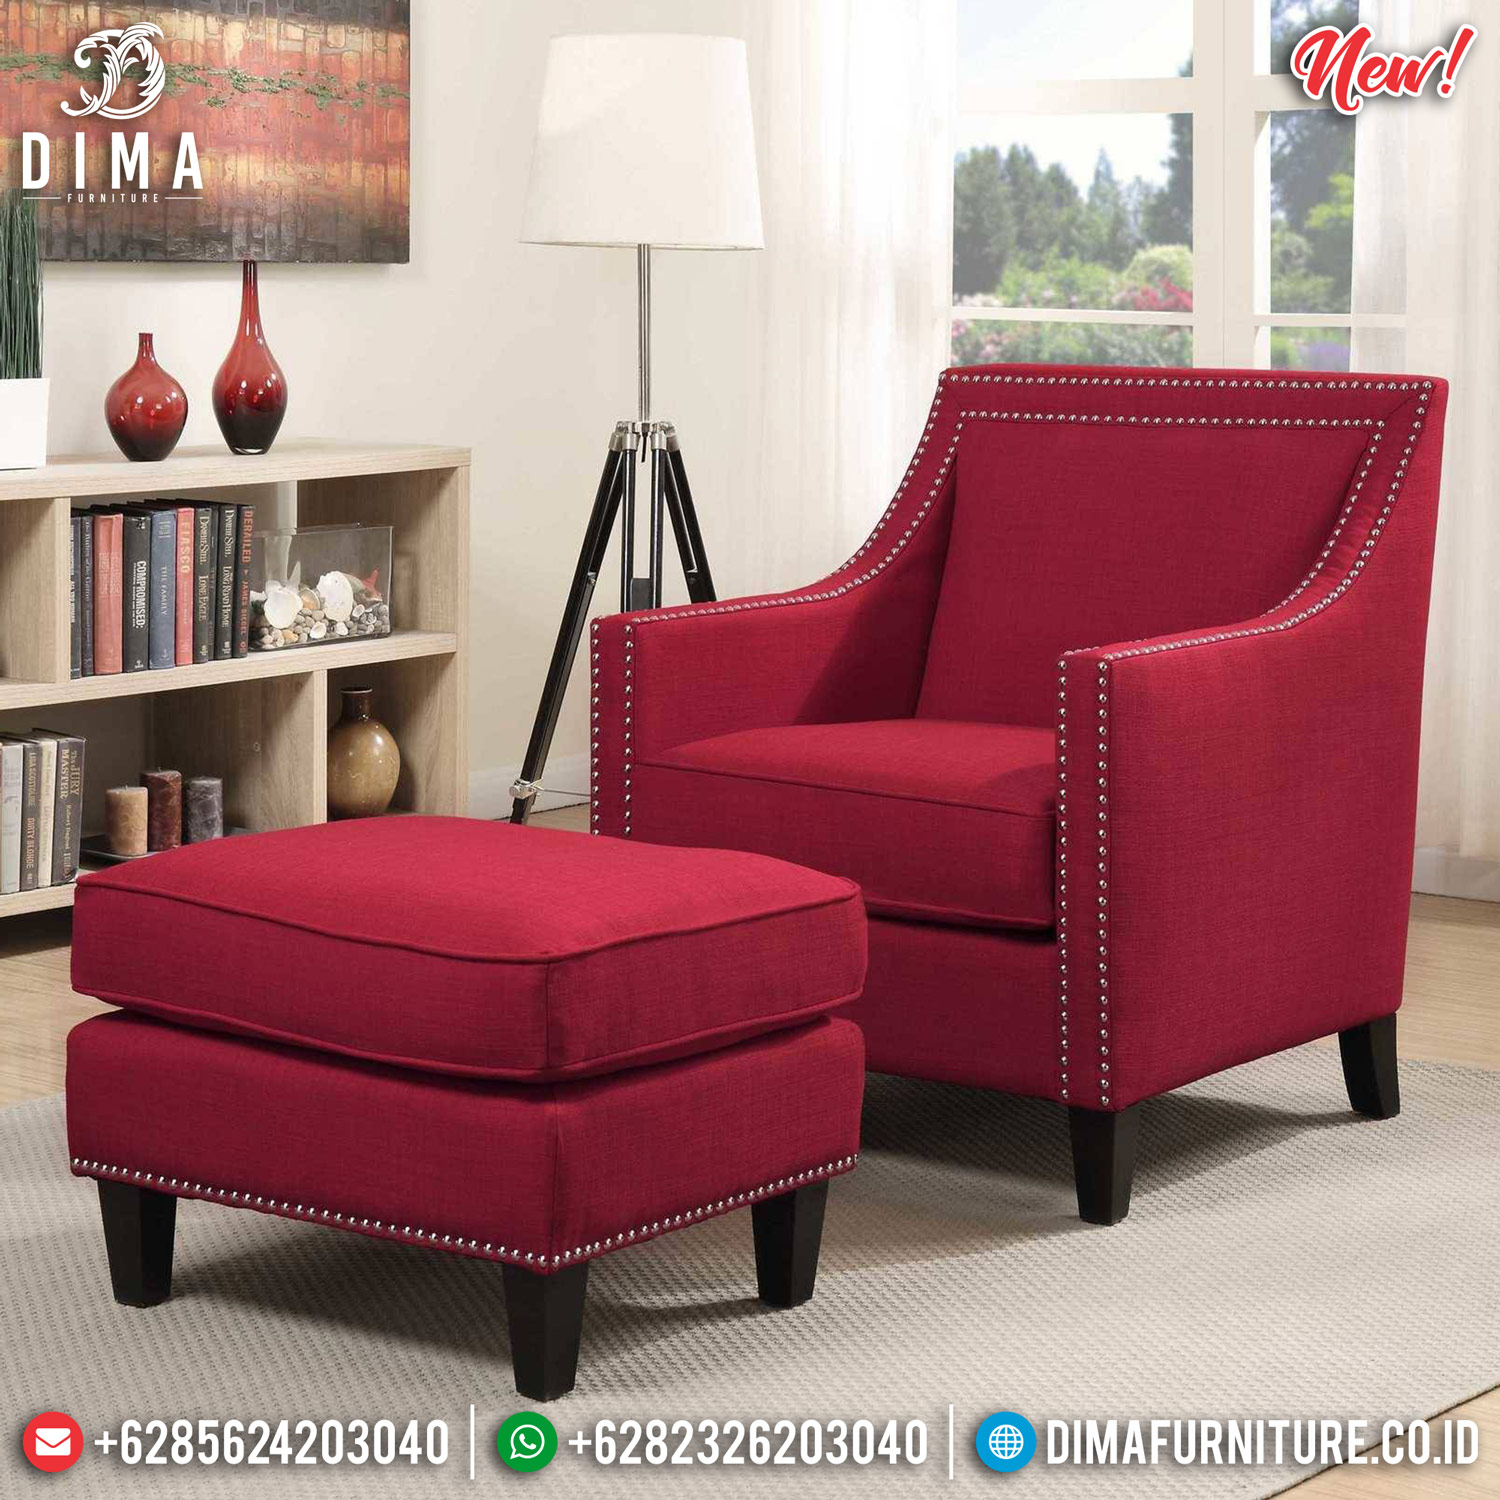 New Model Sofa Minimalist Softly Foam, Sofa Santai Minimalis Jepara MMJ-0817 Model 1